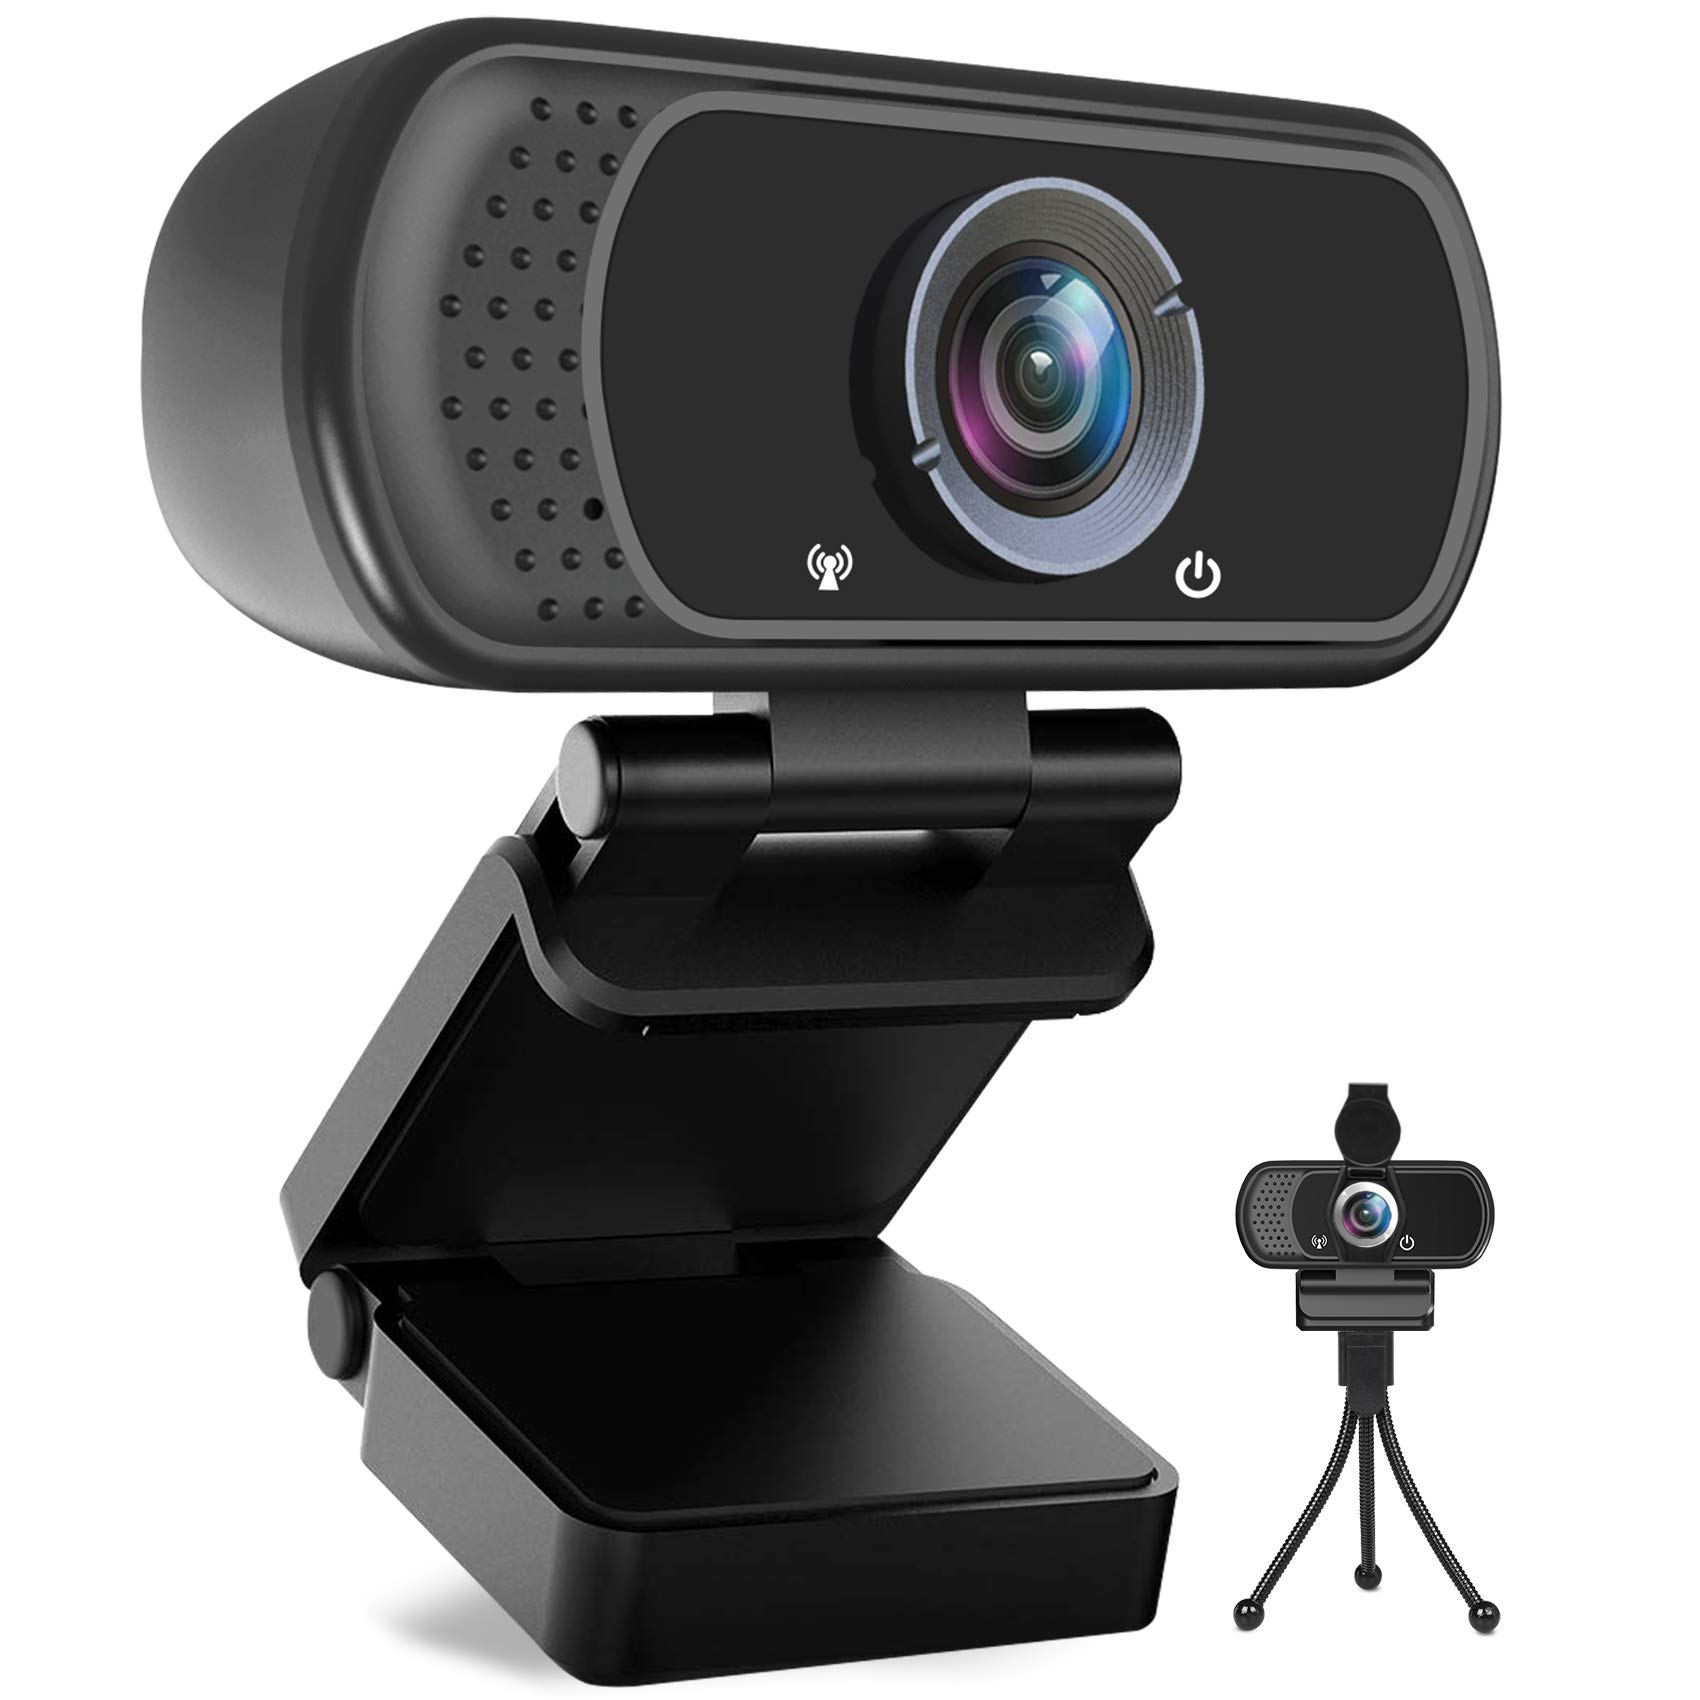 Avater HD Webcam 1080P with Microphone, PC Laptop Desktop USB Webcams 110-Degree Widescreen Web Camera with Rotatable Clip, Black (A-1)